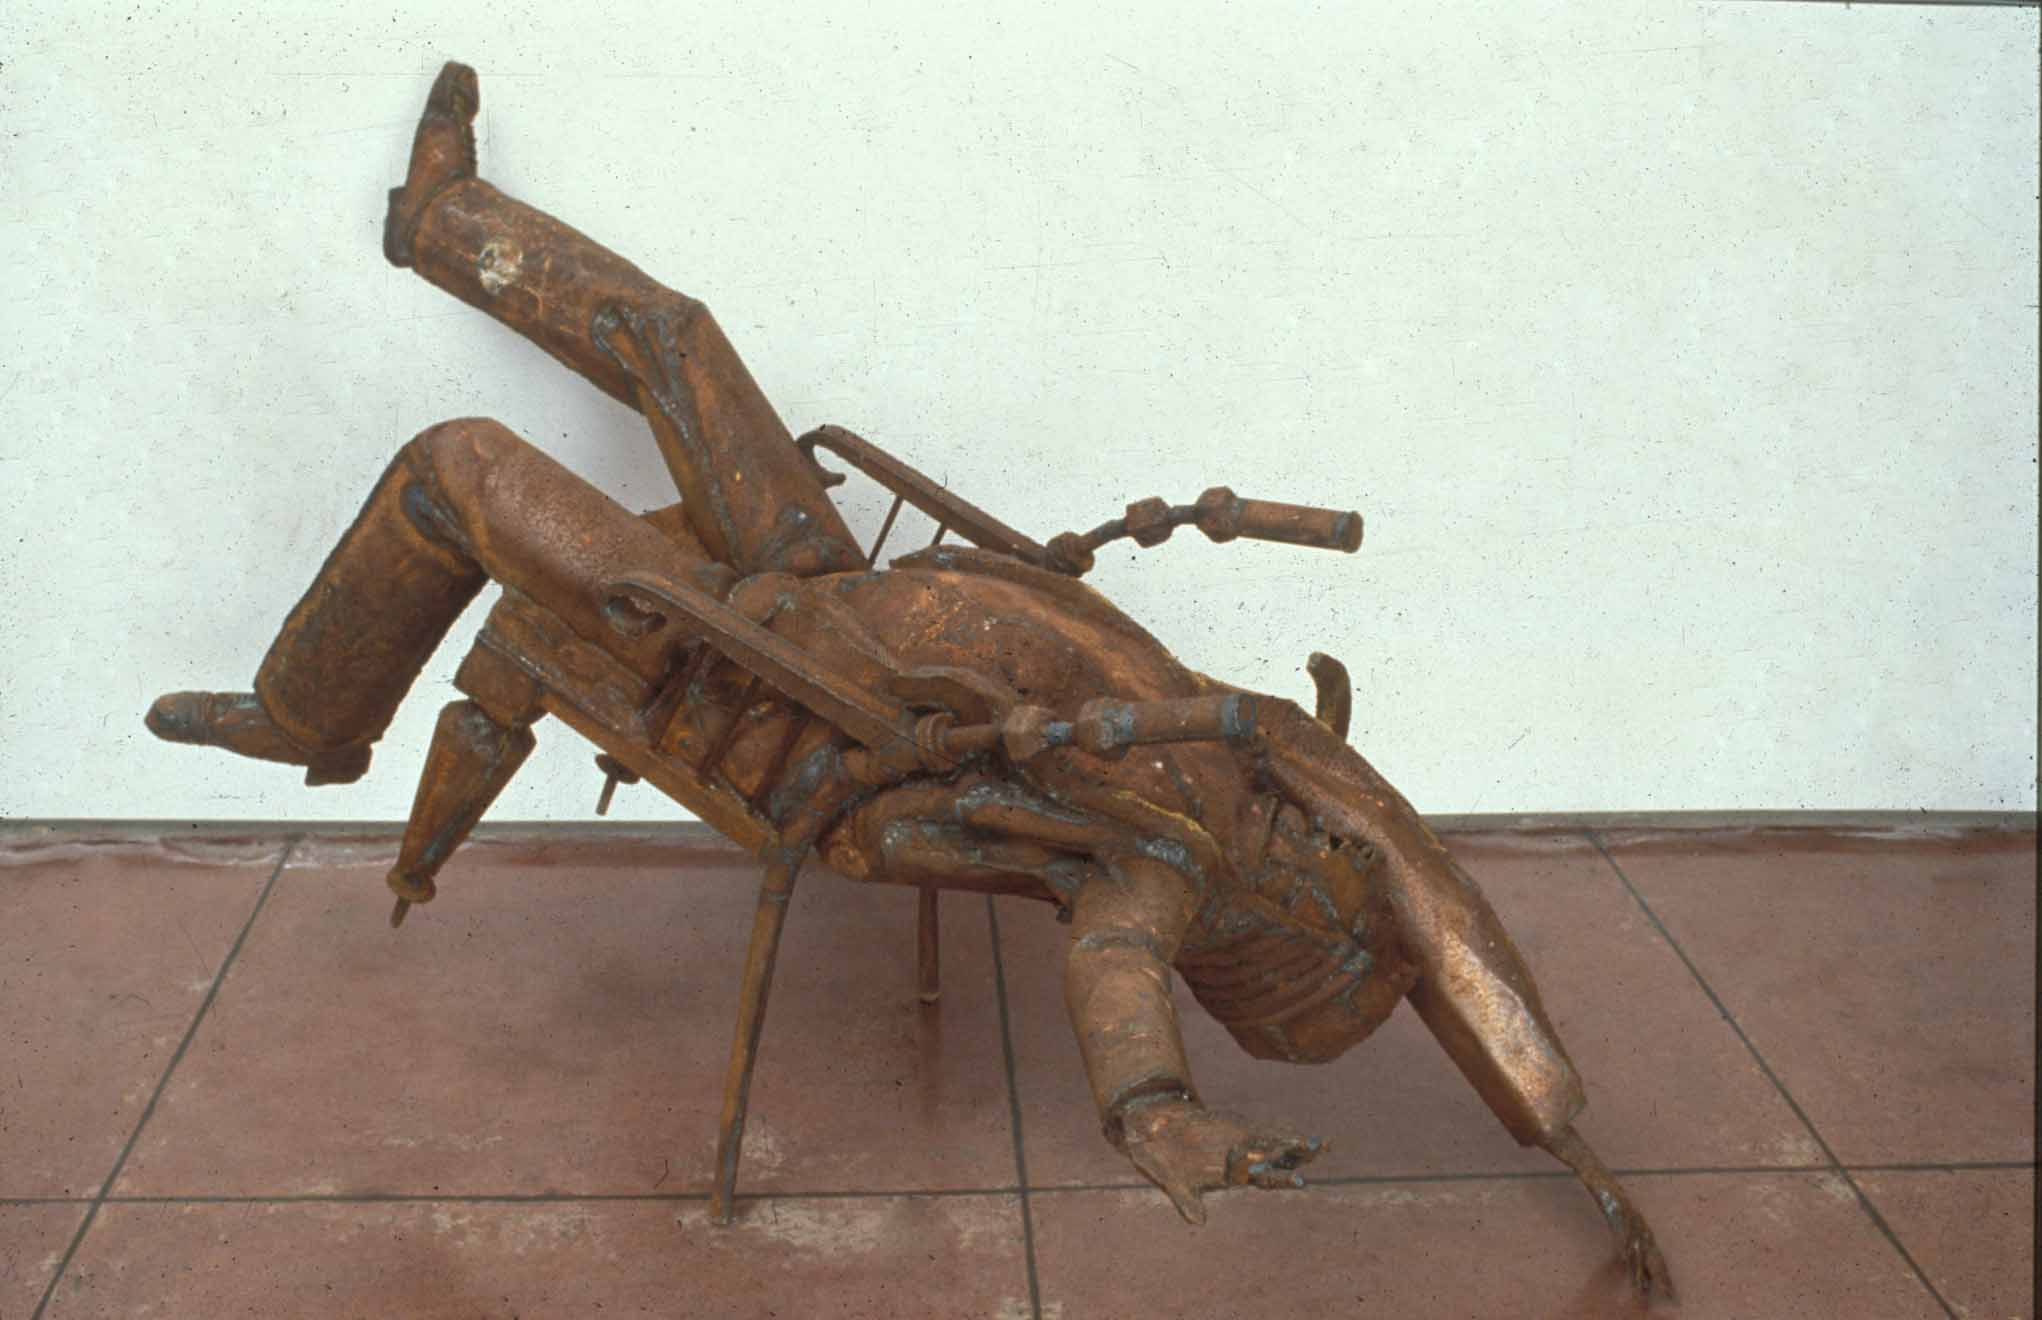 'Death of Judge Barry'  1989 1.4m by 2m by 0.7m, steel